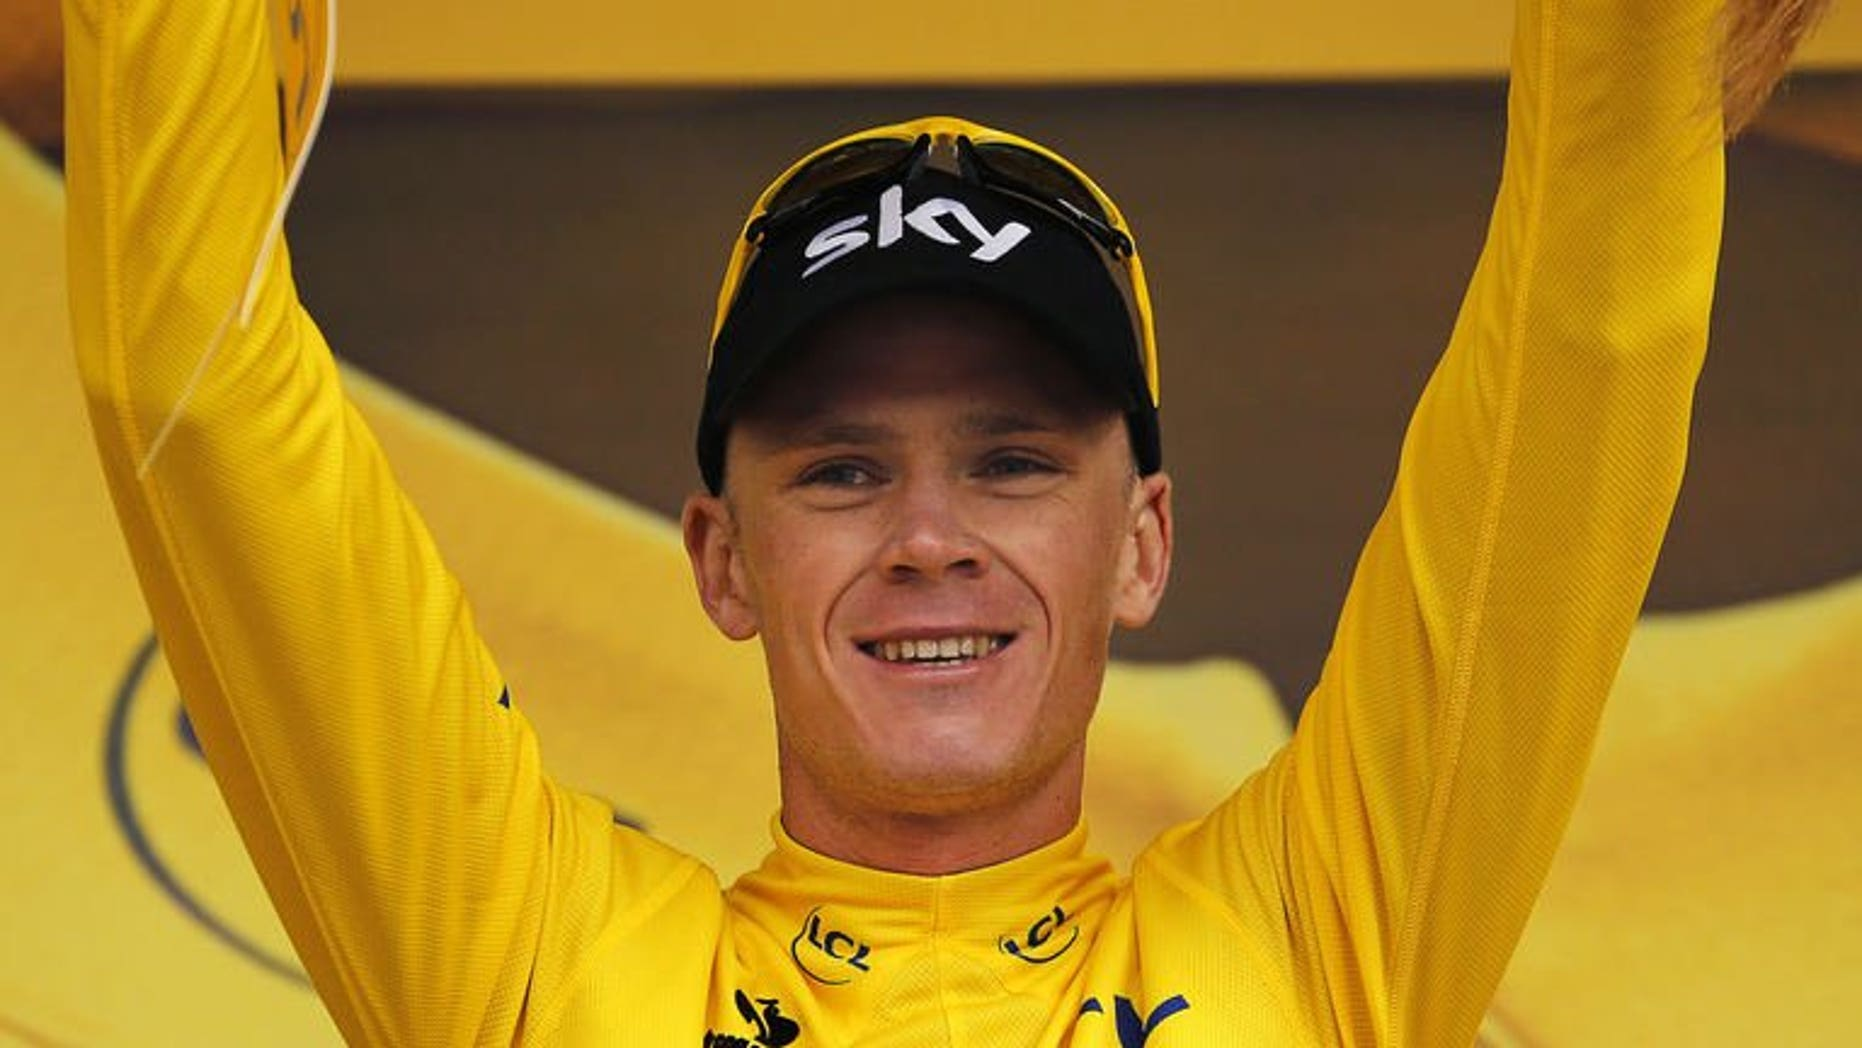 Britain's Christopher Froome celebrates his overall leader yellow jersey on the podium at the end of the 19th stage of the 100th edition of the Tour de France on July 19, 2013 between Bourg-d'Oisans and Le Grand-Bornand, French Alps.